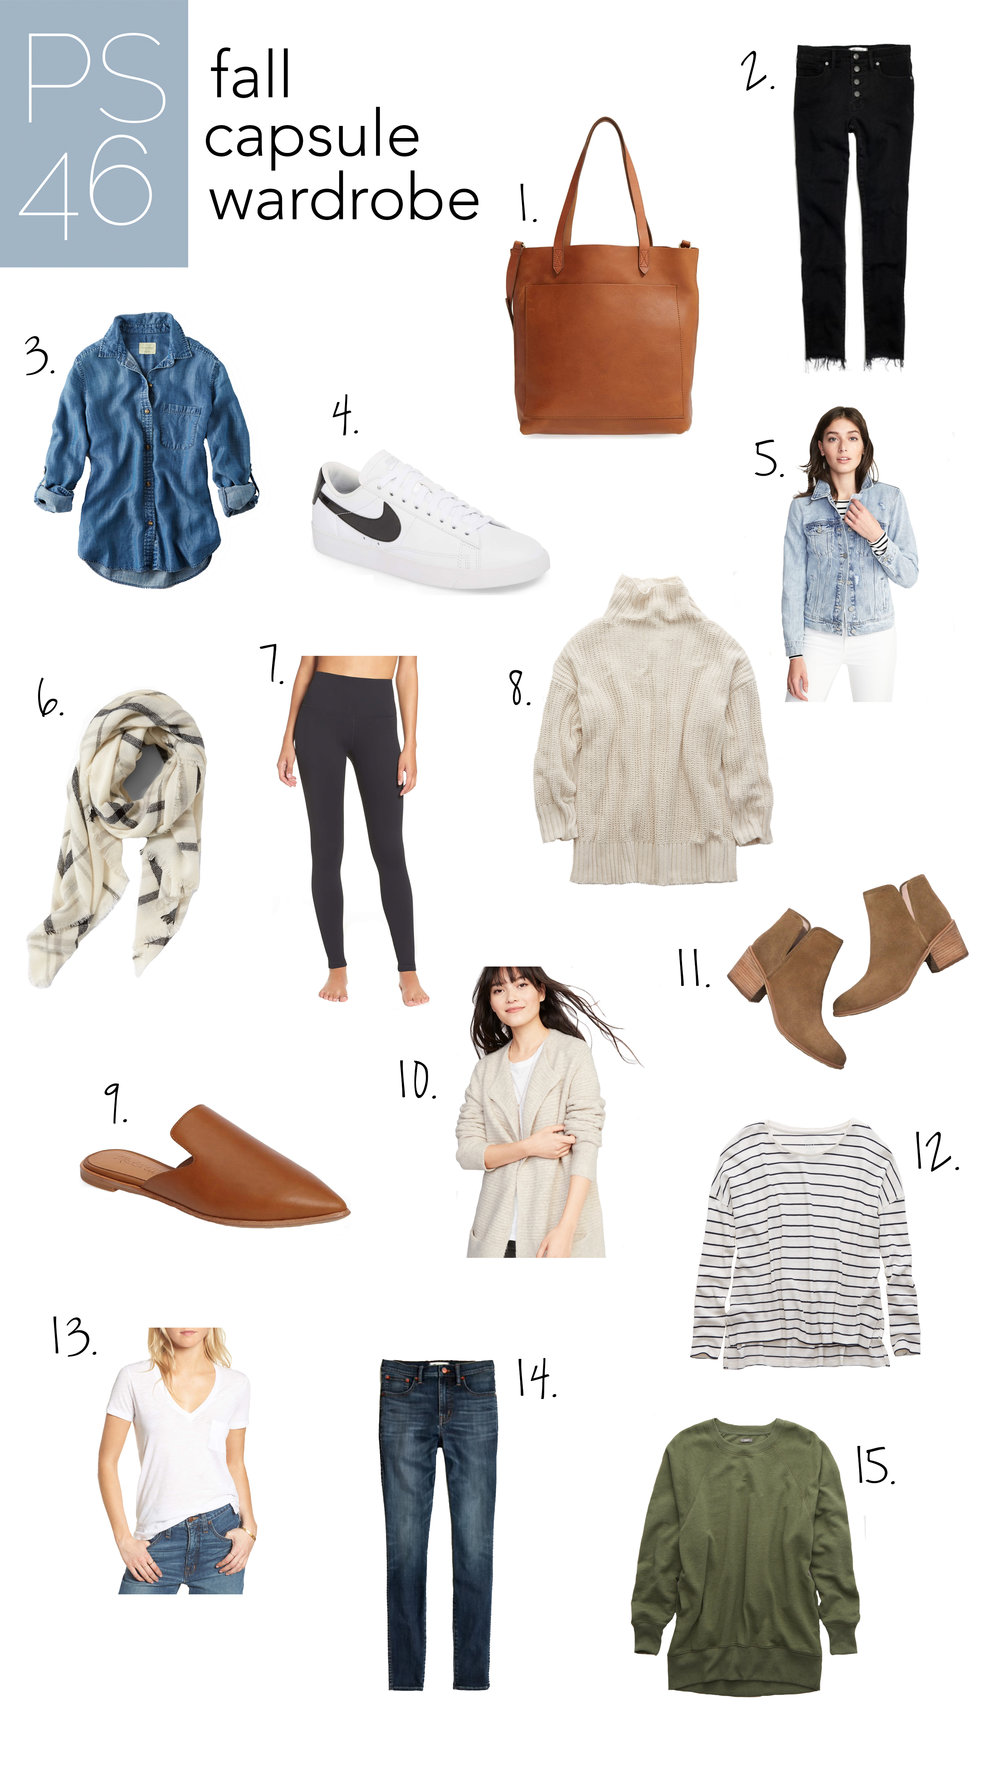 Fall Capsule Wardrobe — 15 Basics You Need in Your Closet